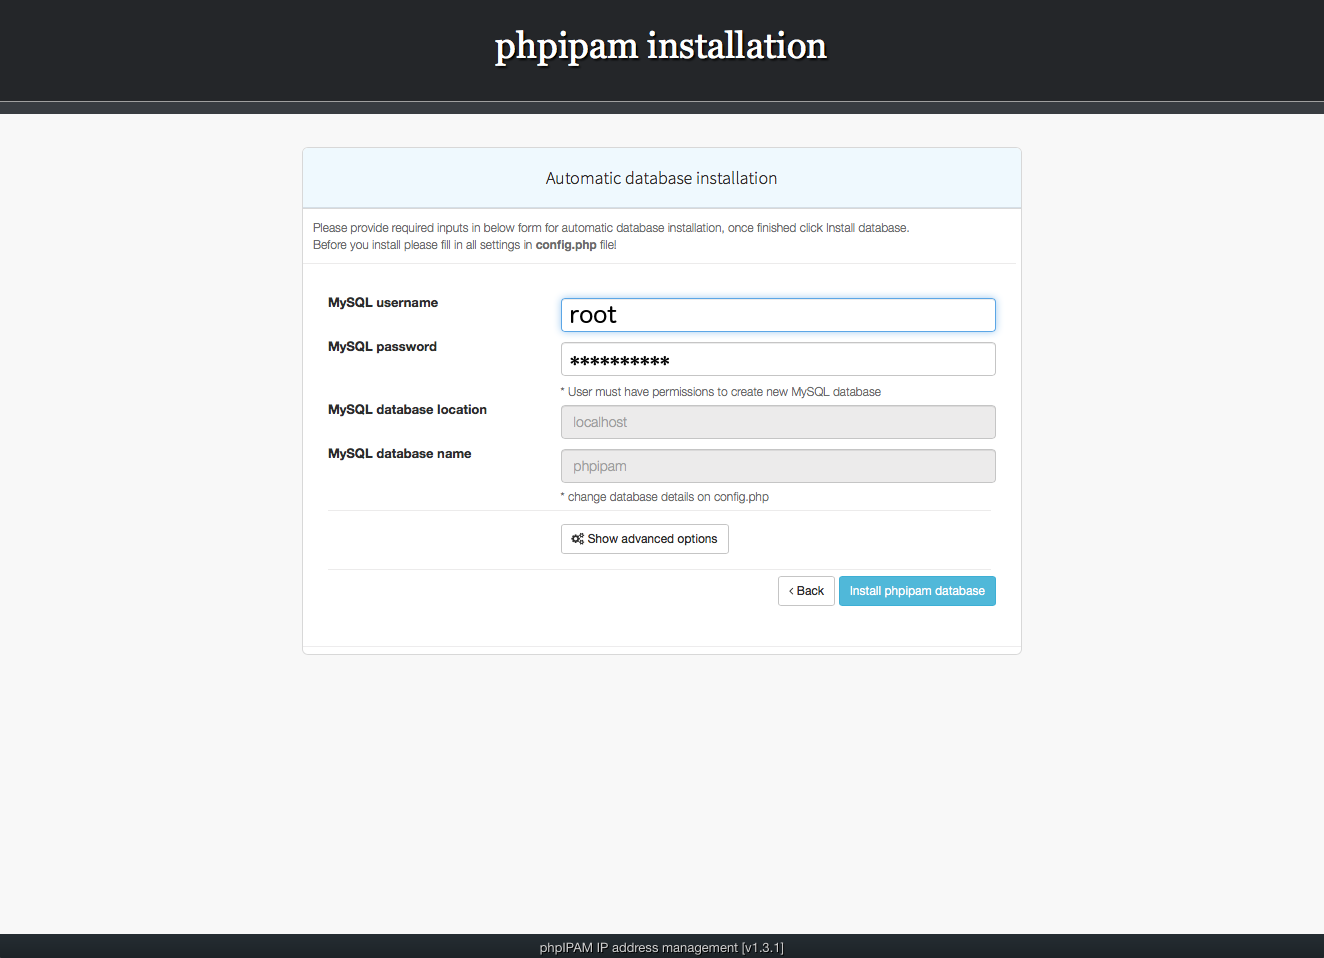 Installing phpIPAM, step 3